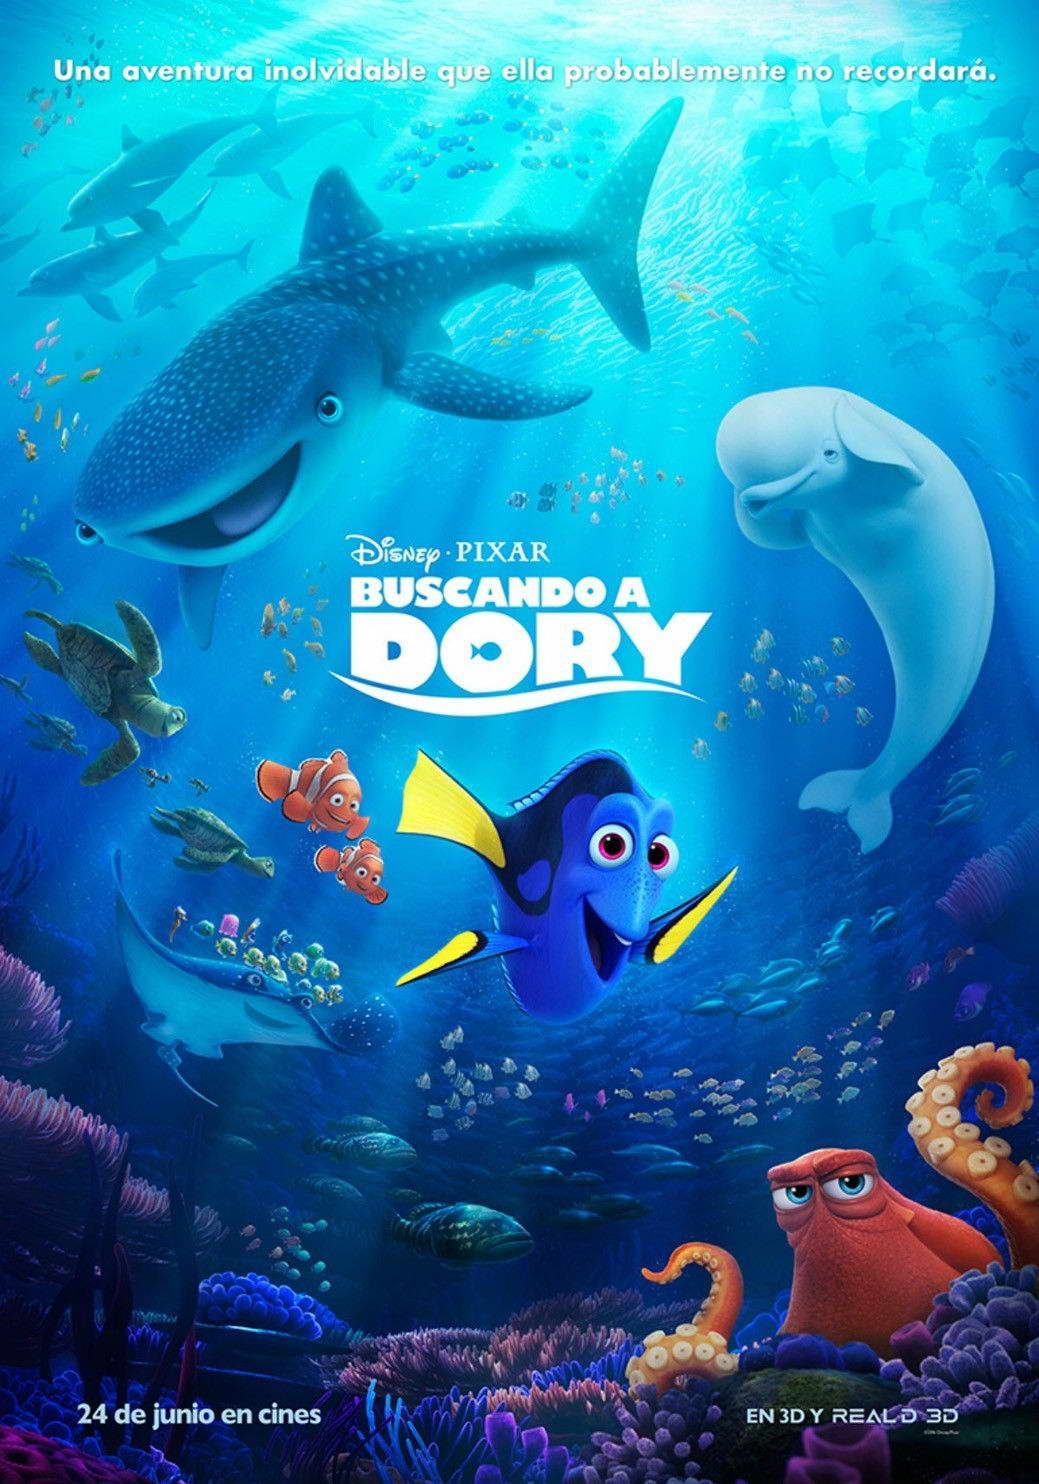 18094 finding nemo 2 movie wall print poster uk ebay 18094 finding nemo 2 movie wall print poster thecheapjerseys Gallery